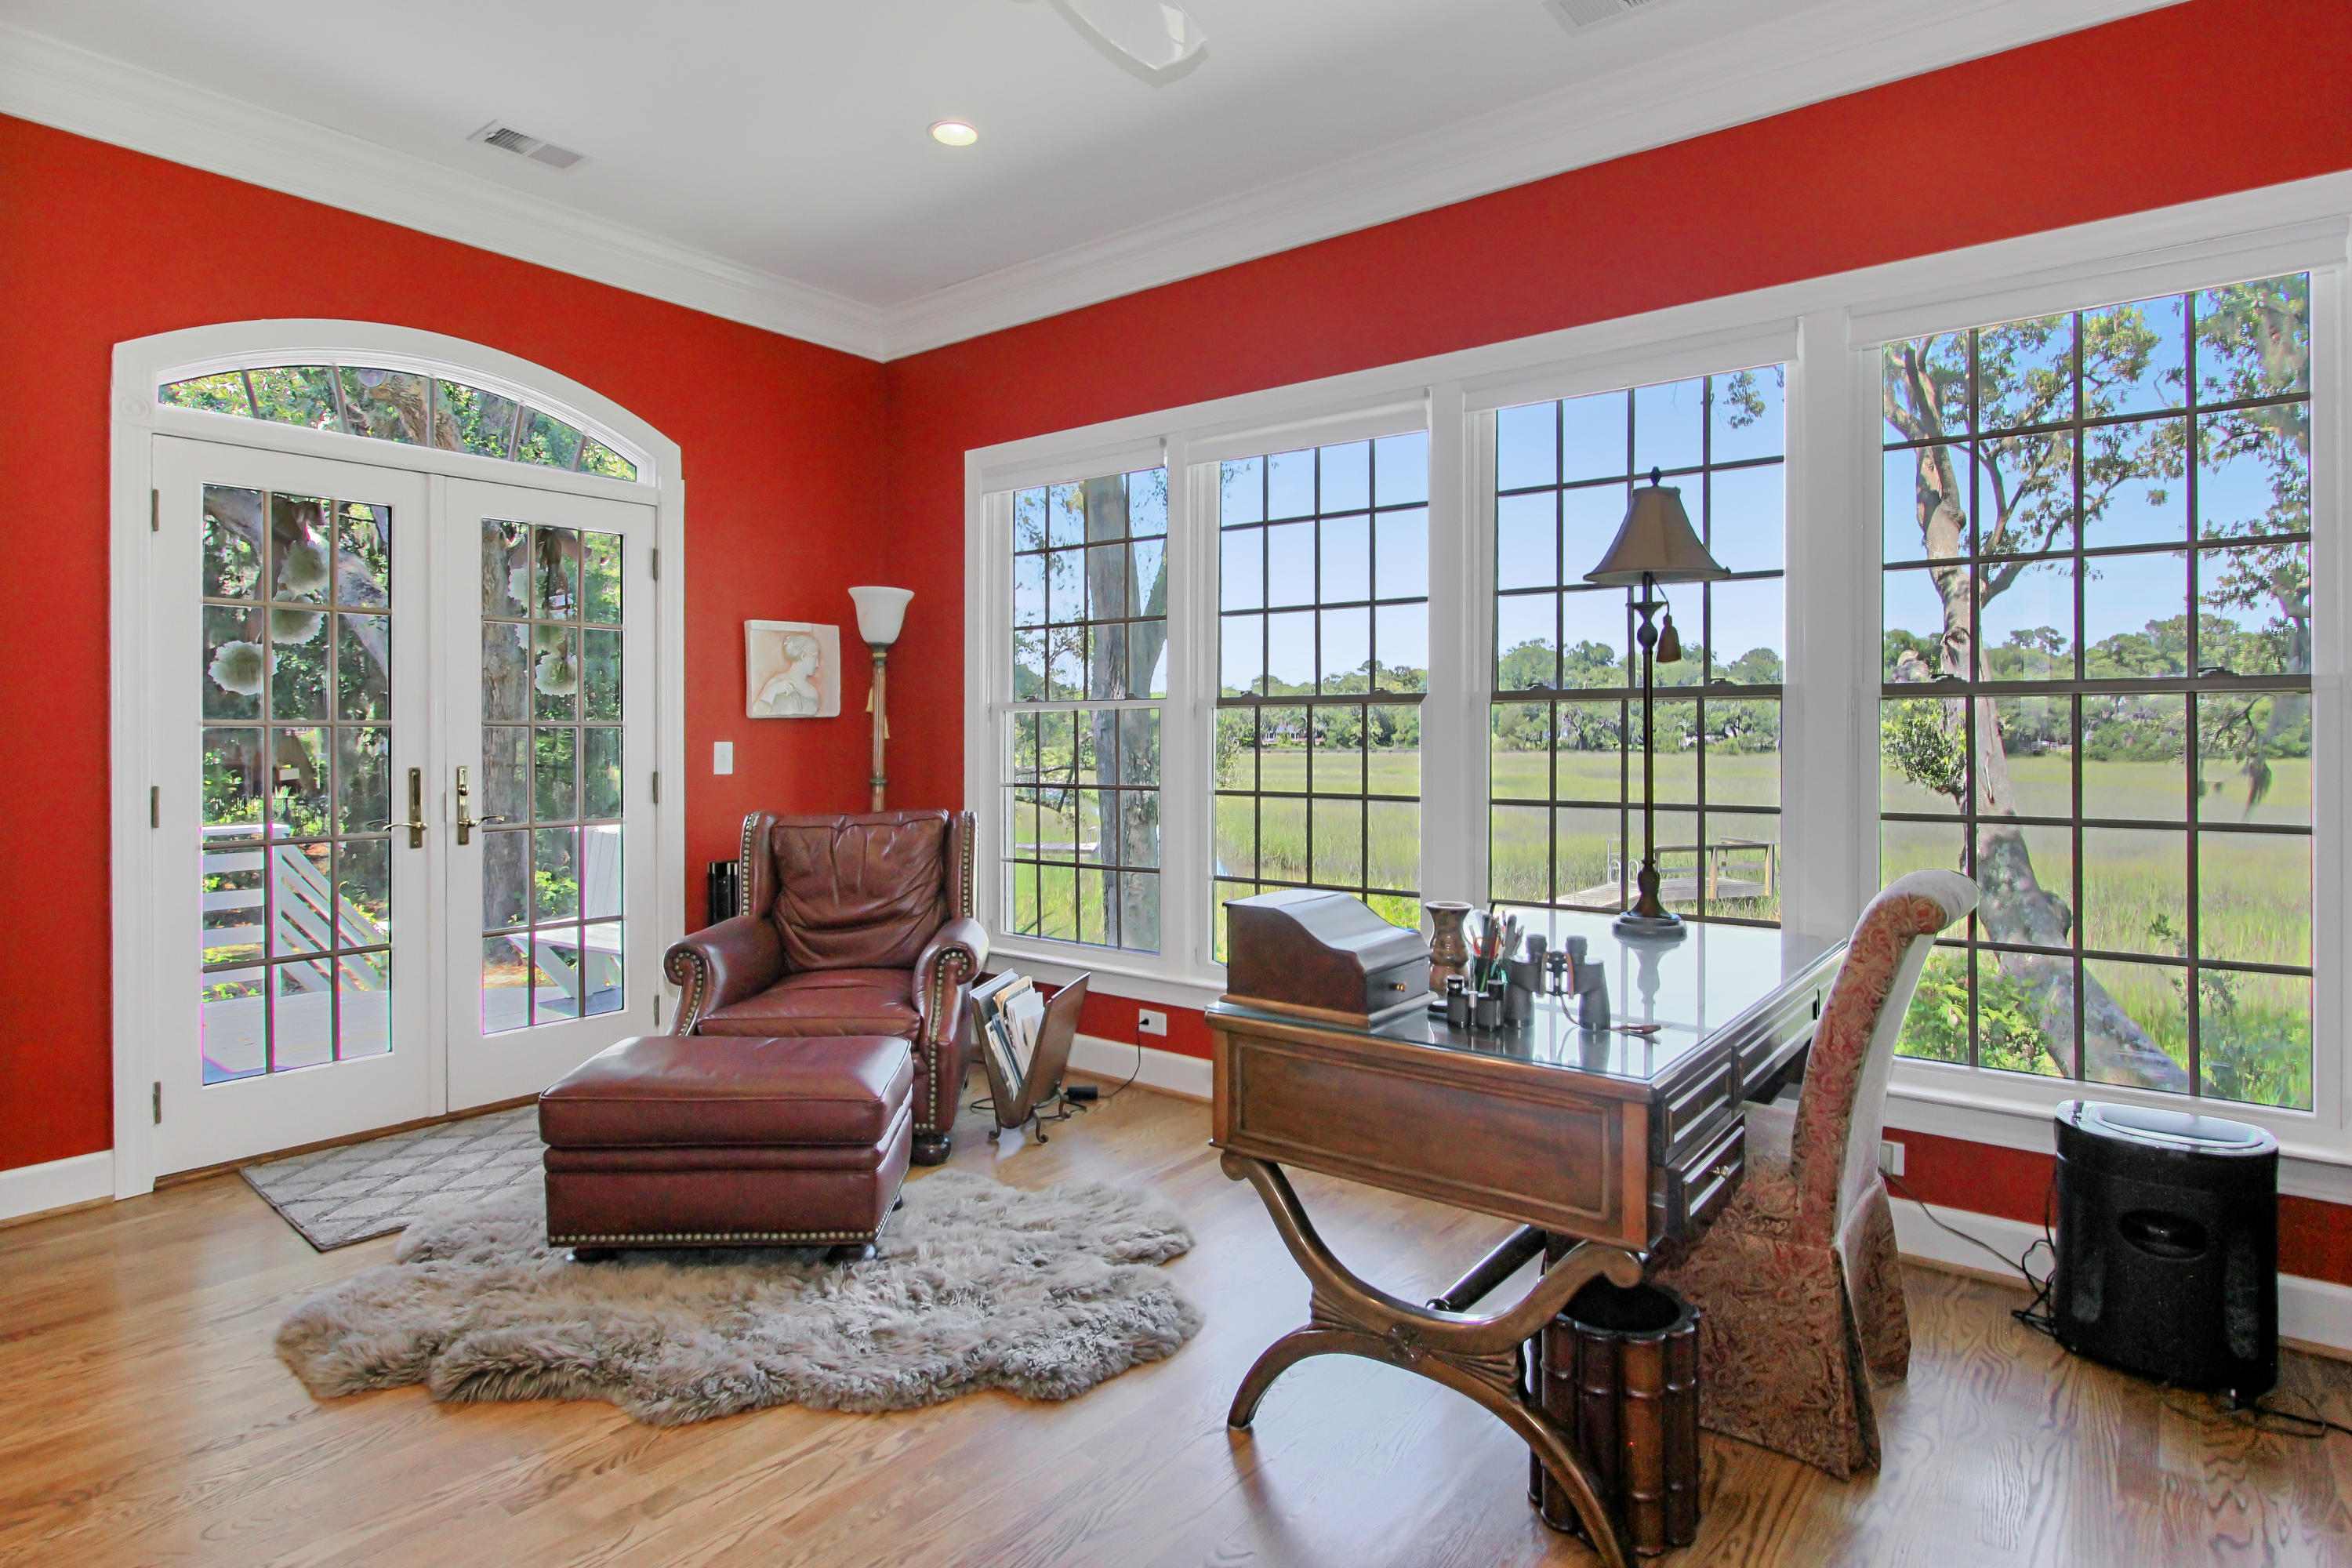 Stiles Point Plantation Homes For Sale - 837 Whispering Marsh, Charleston, SC - 6